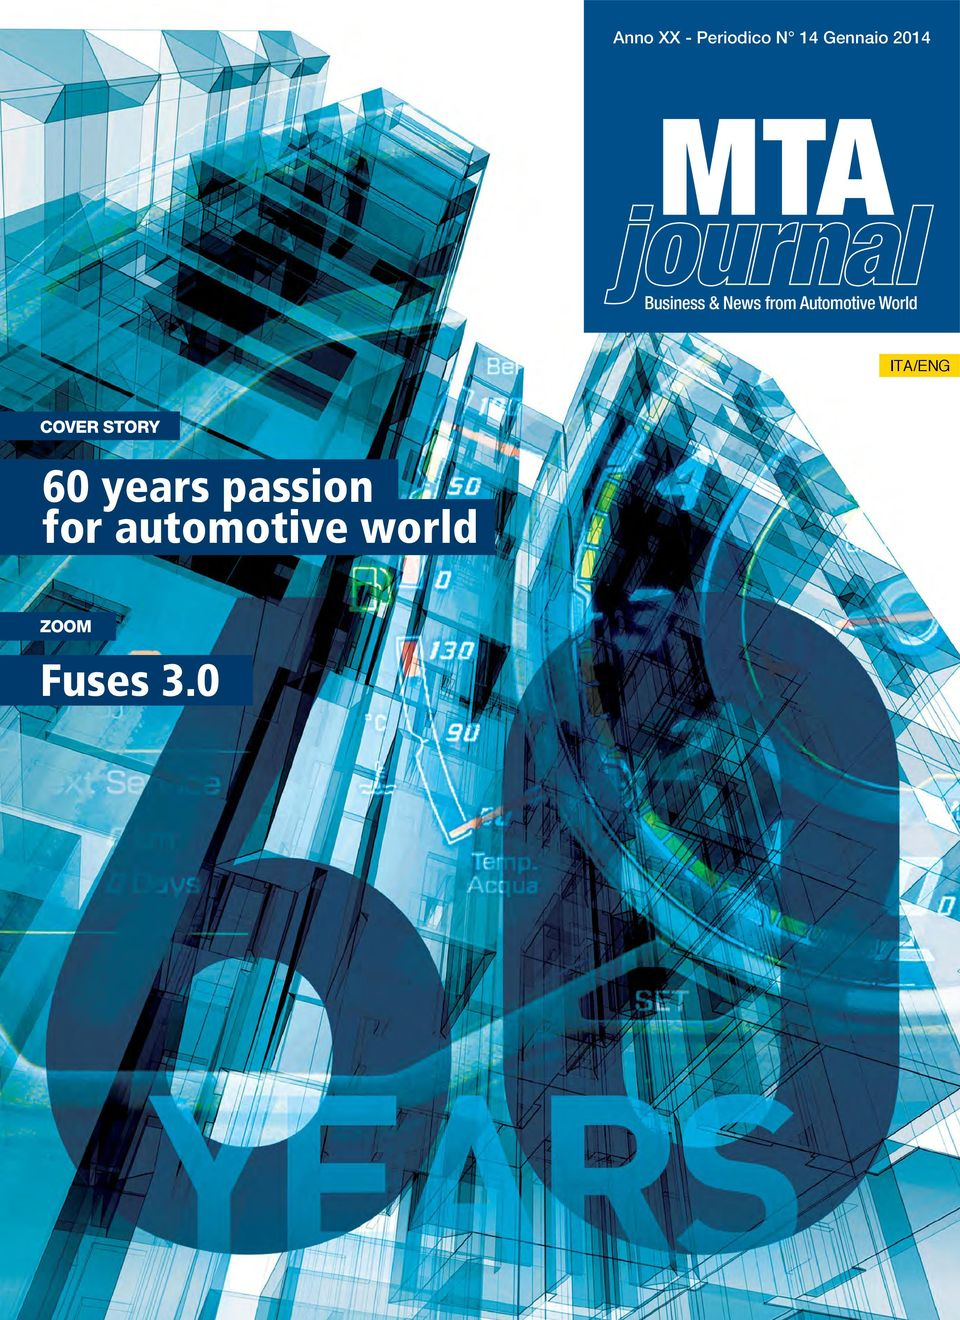 World ITA/ENG COVER STORY 60 years